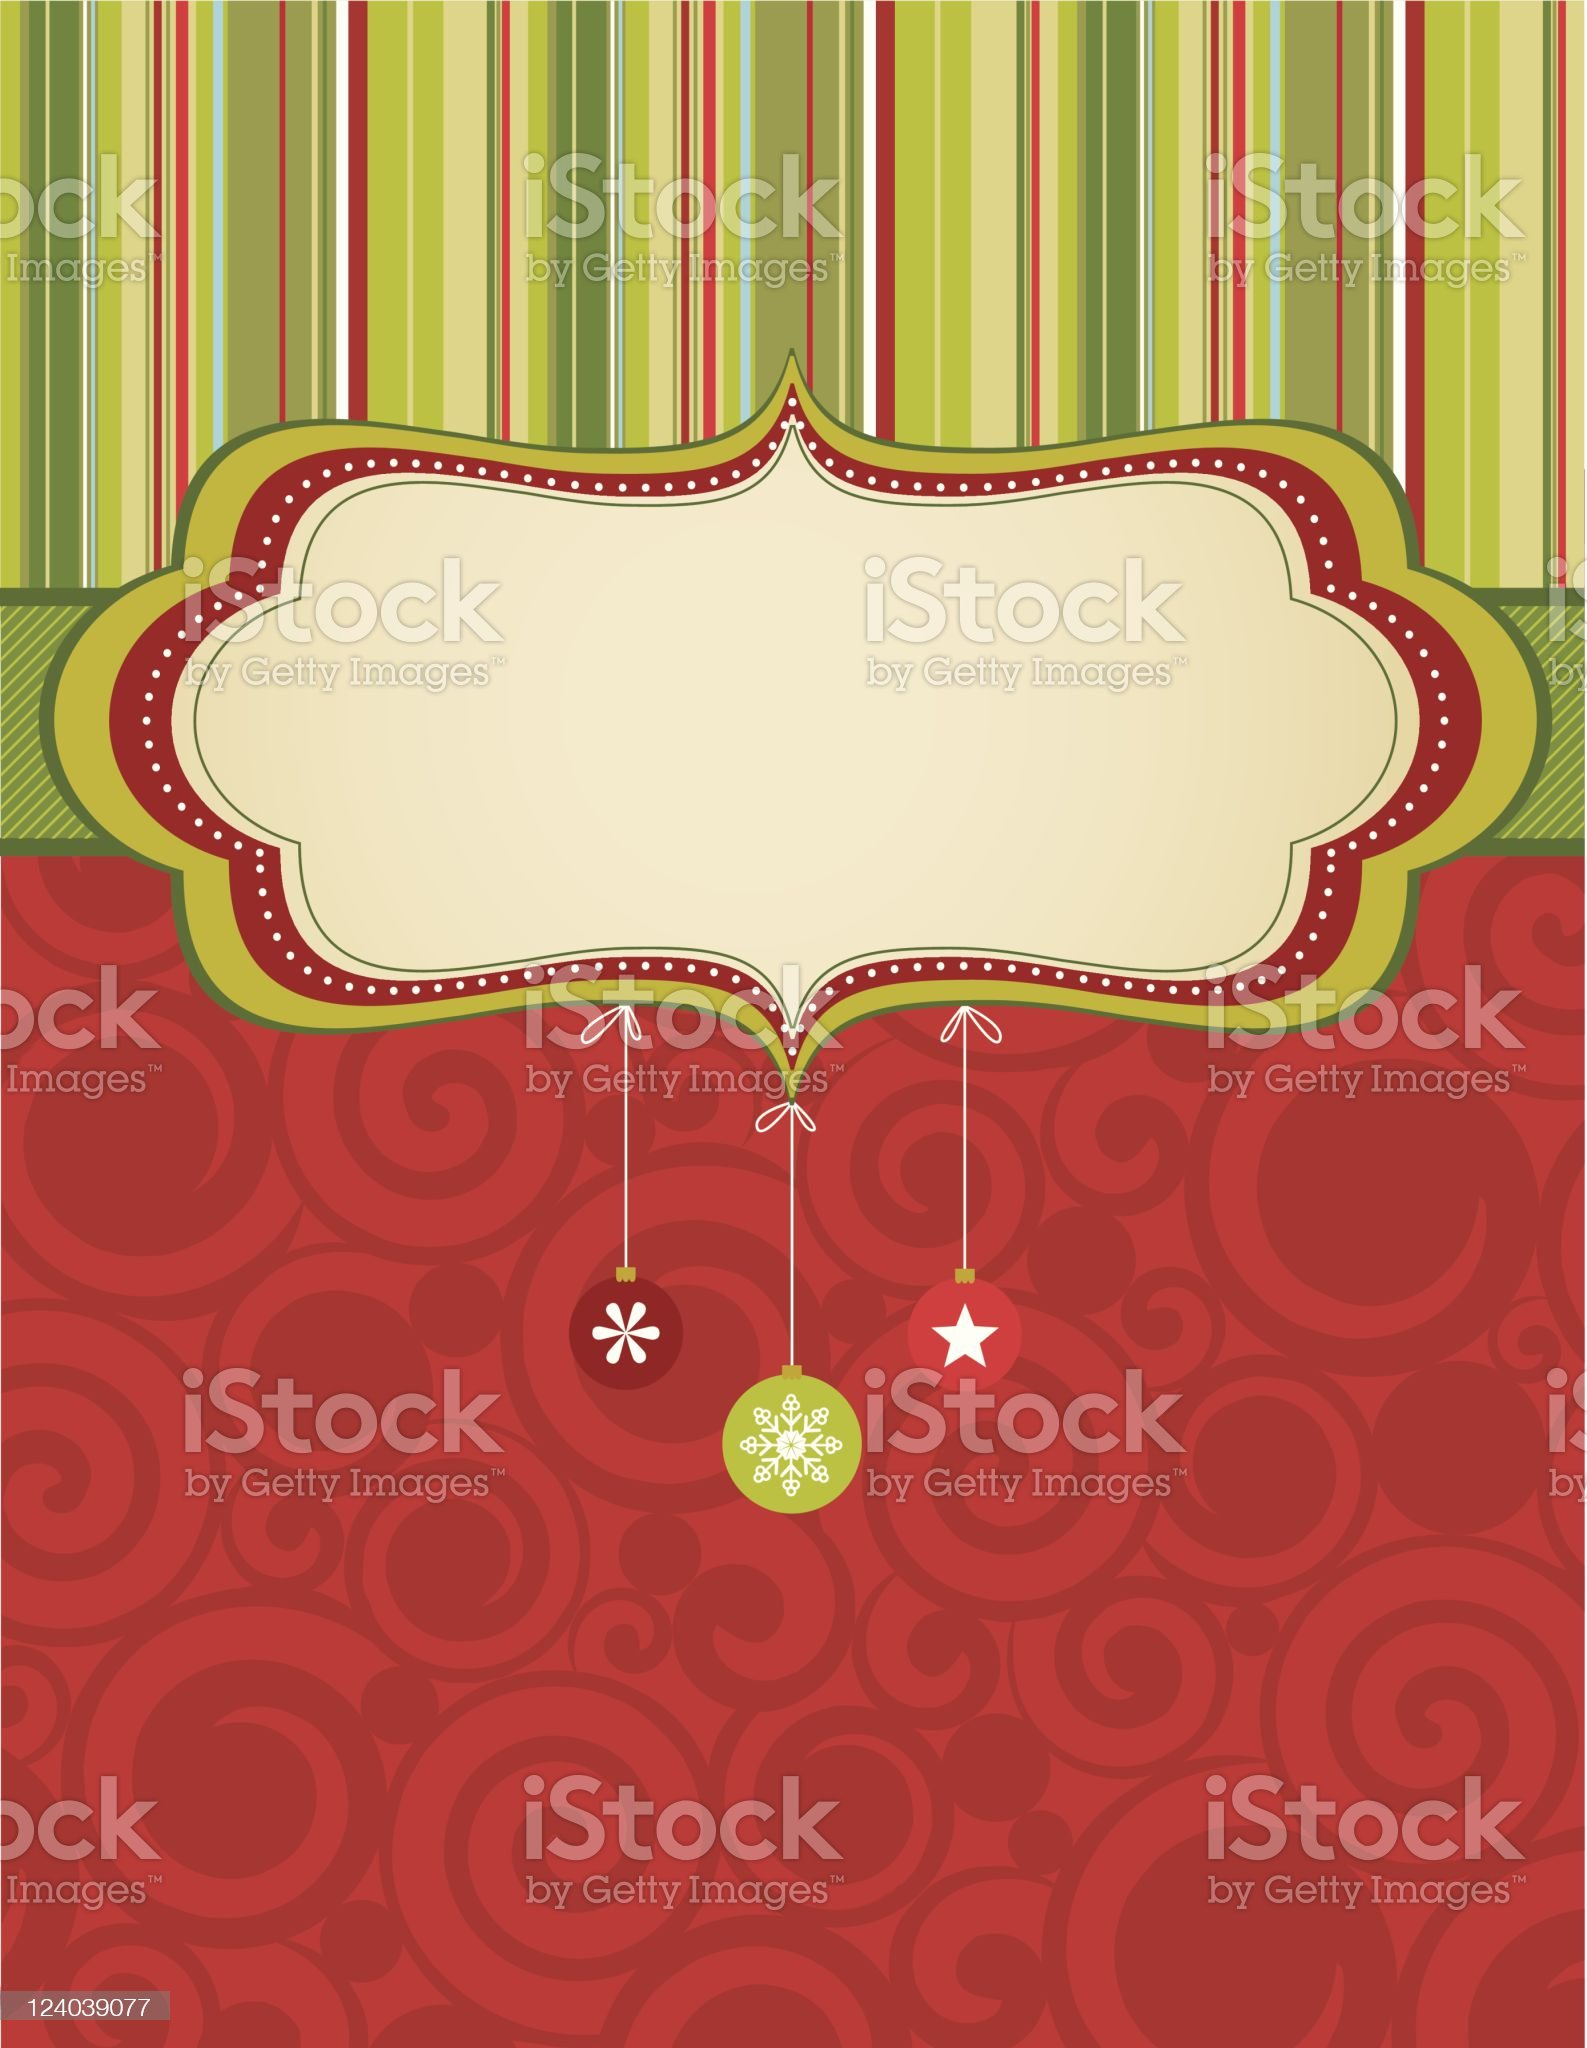 Christmas badge background royalty-free stock vector art